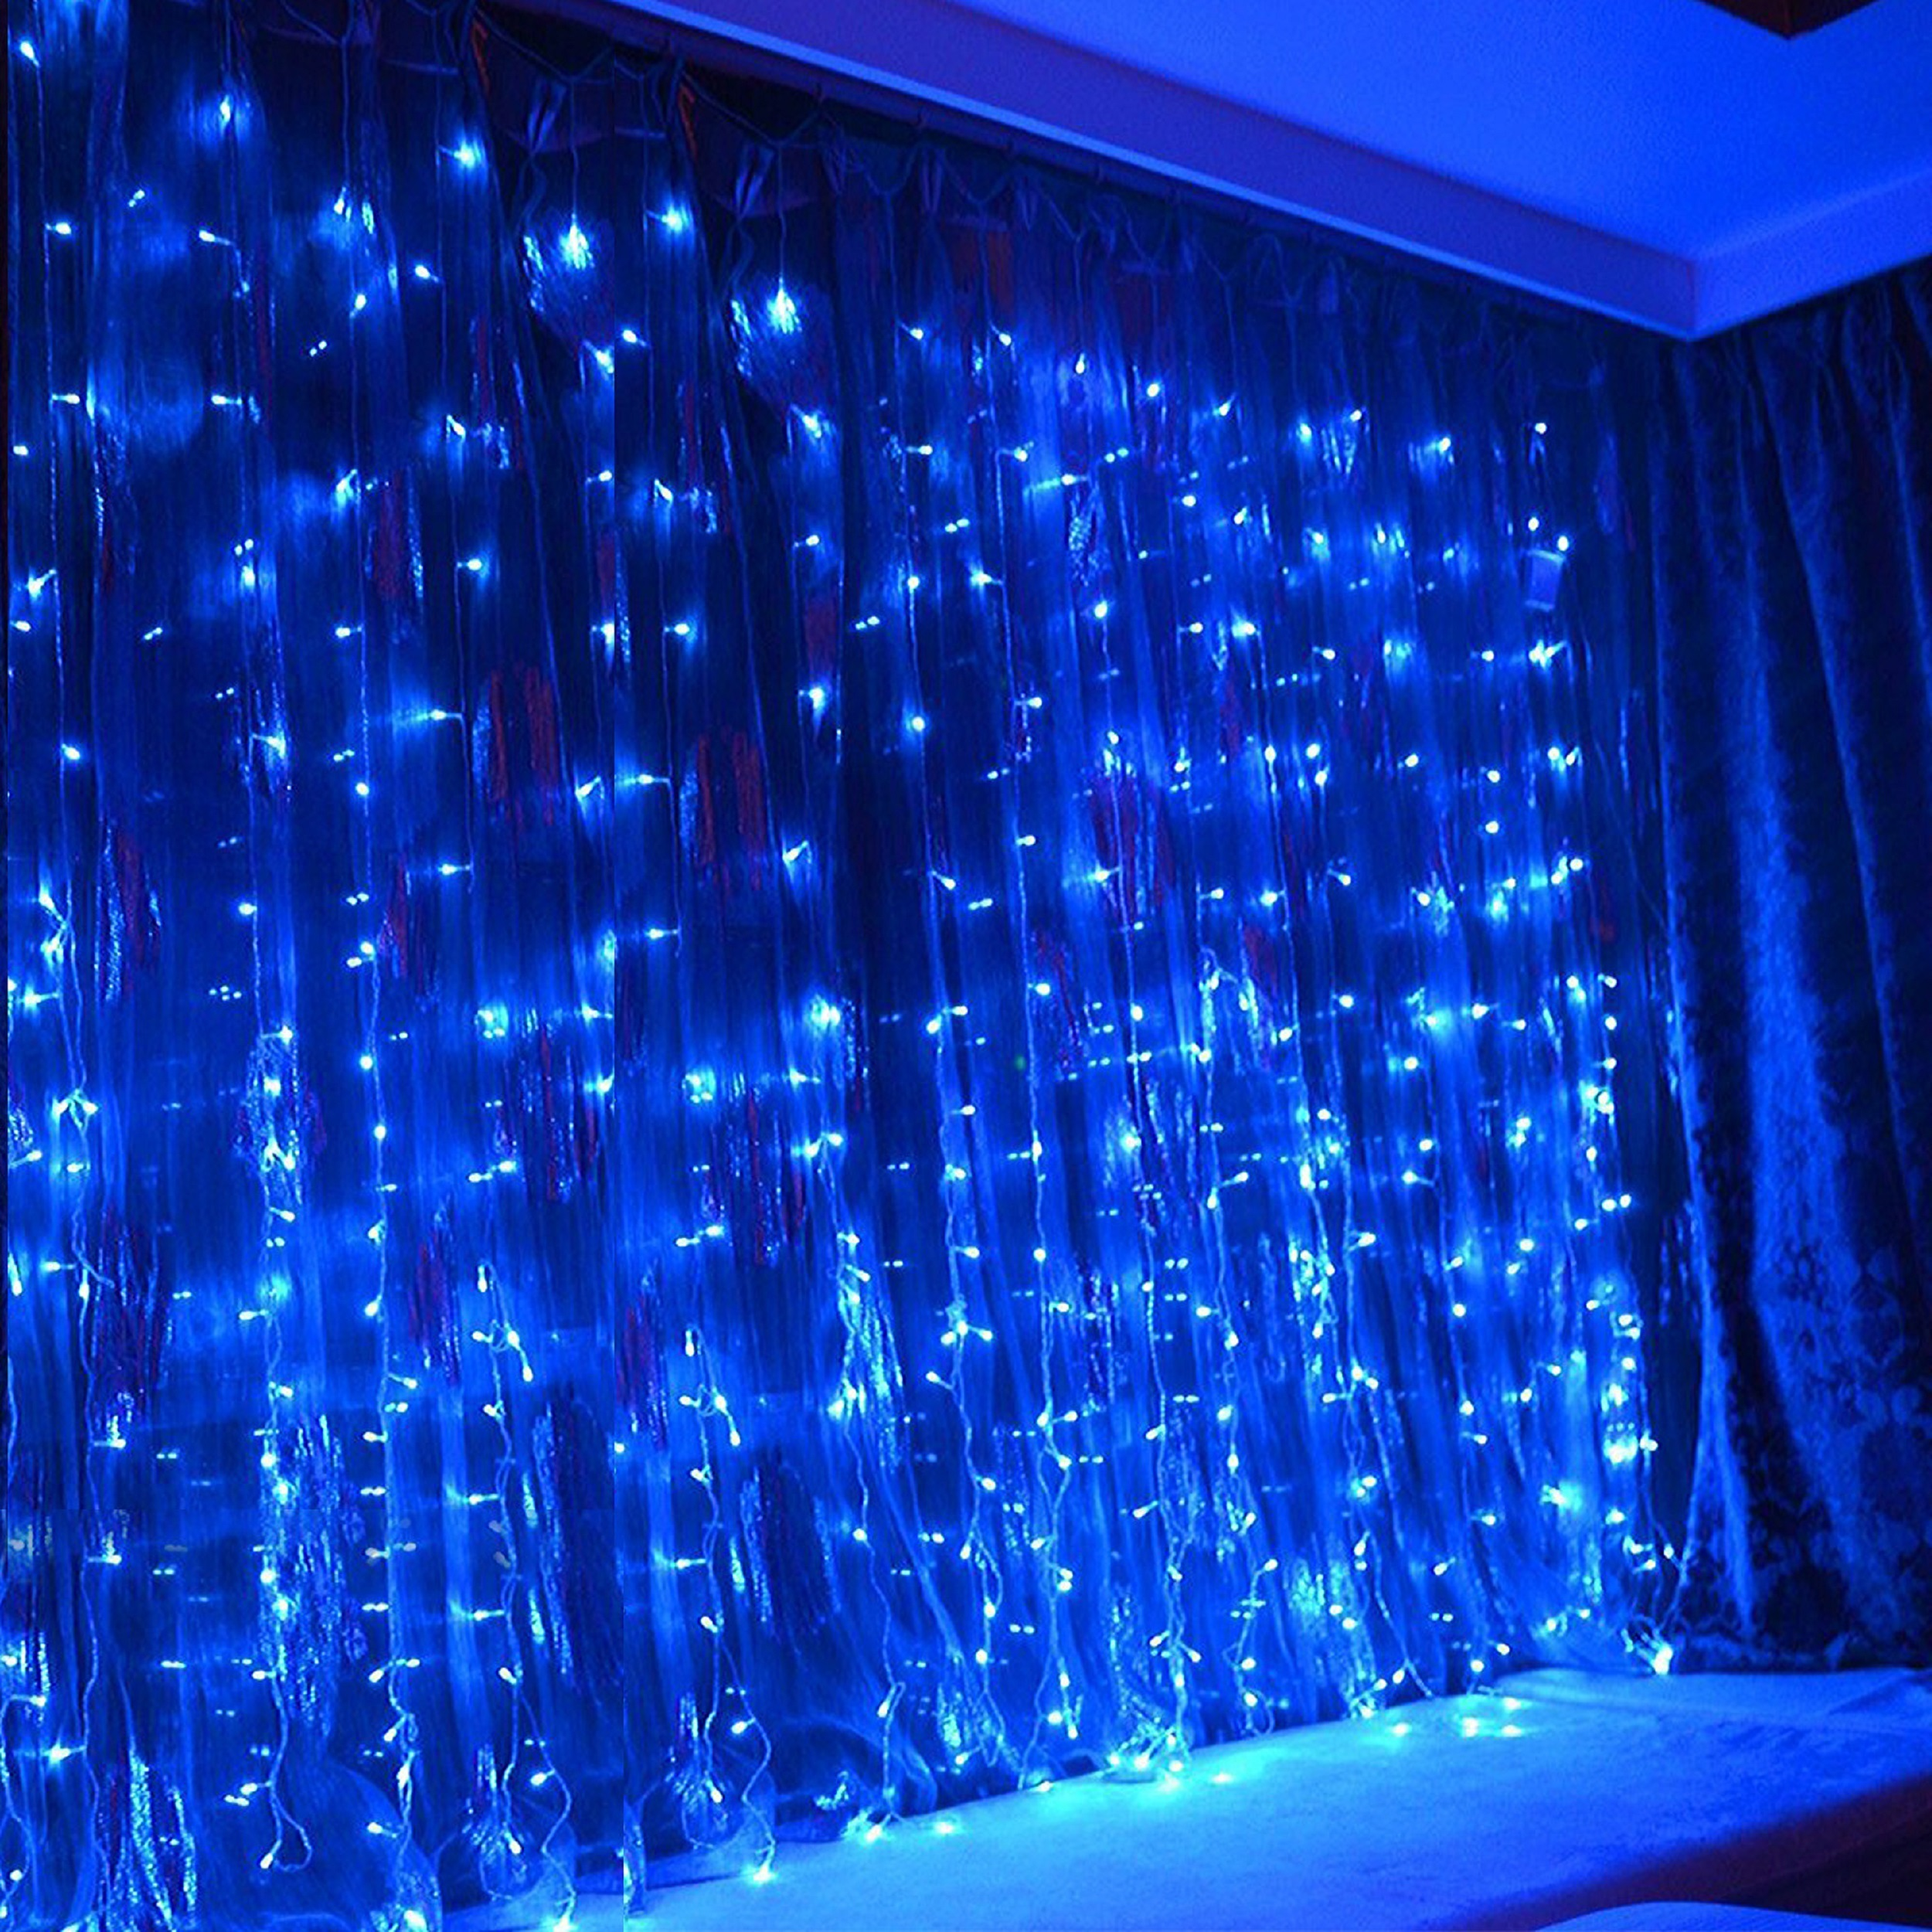 Torchstar 9 8ft X Led Curtain Lights Starry Christmas String Light Indoor Outdoor Decoration For Festival Wedding Party Living Room Bedroom